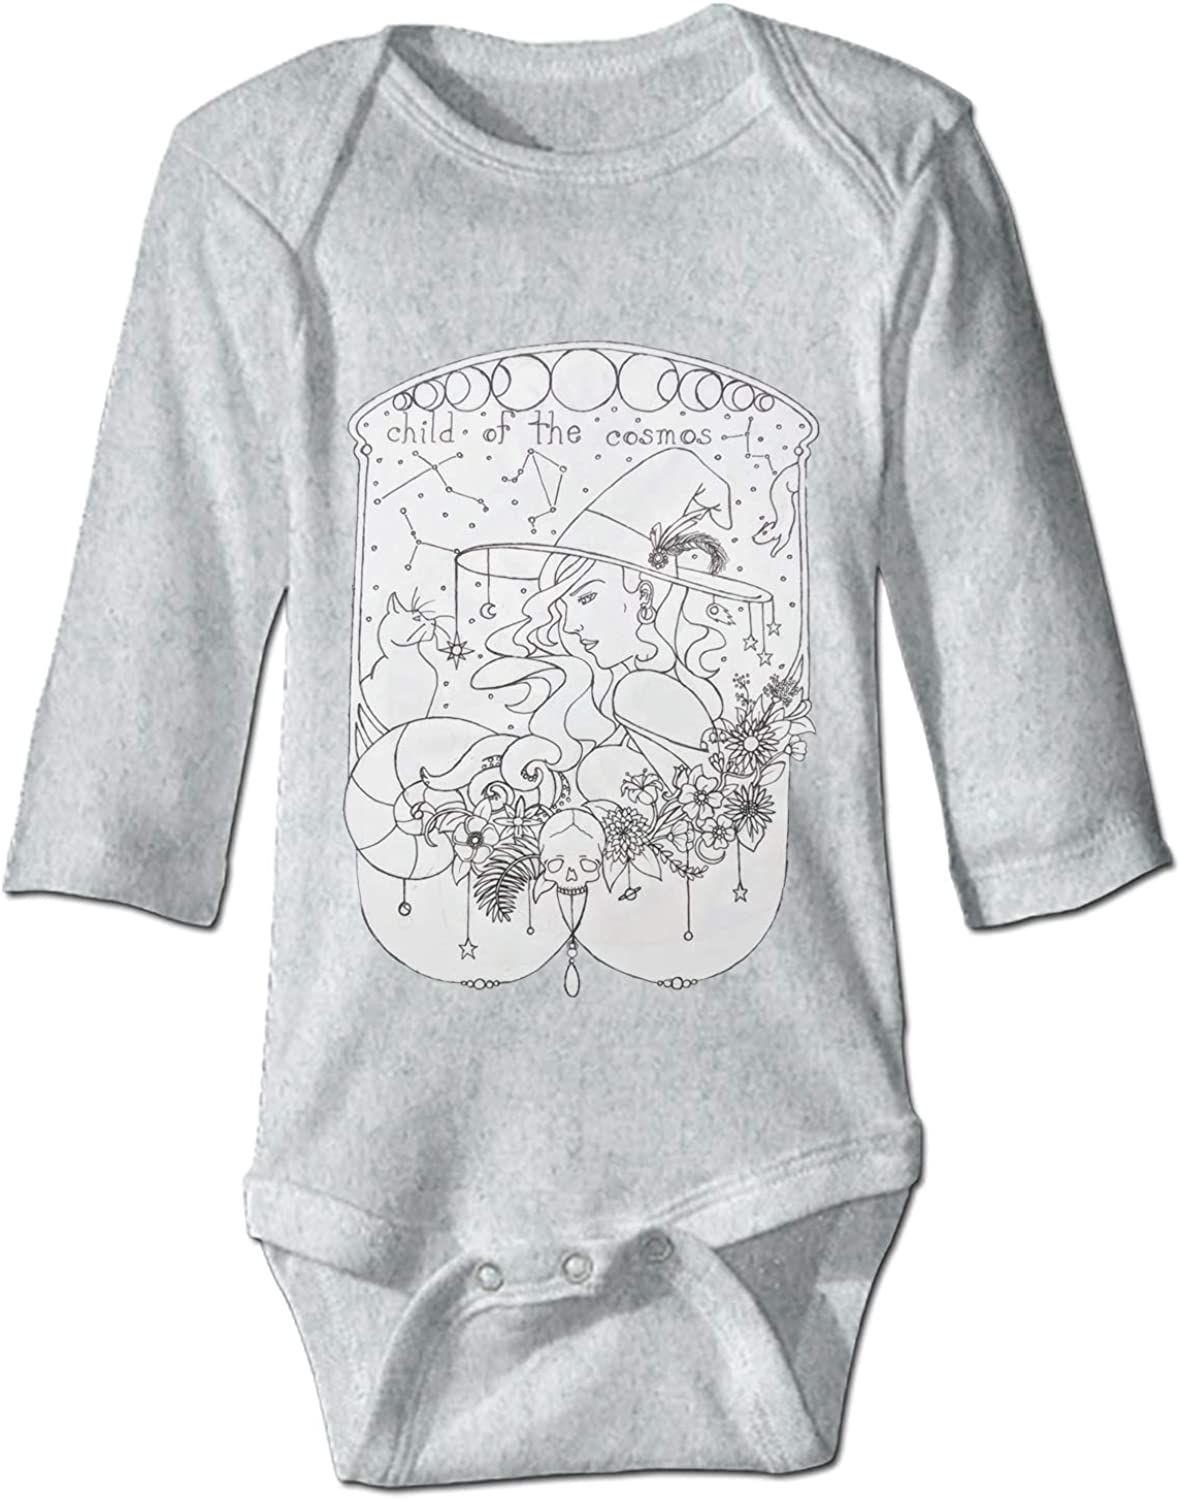 Baby Cute Cat Bodysuits Rompers Outfits Casual Clothes,Long Sleeve